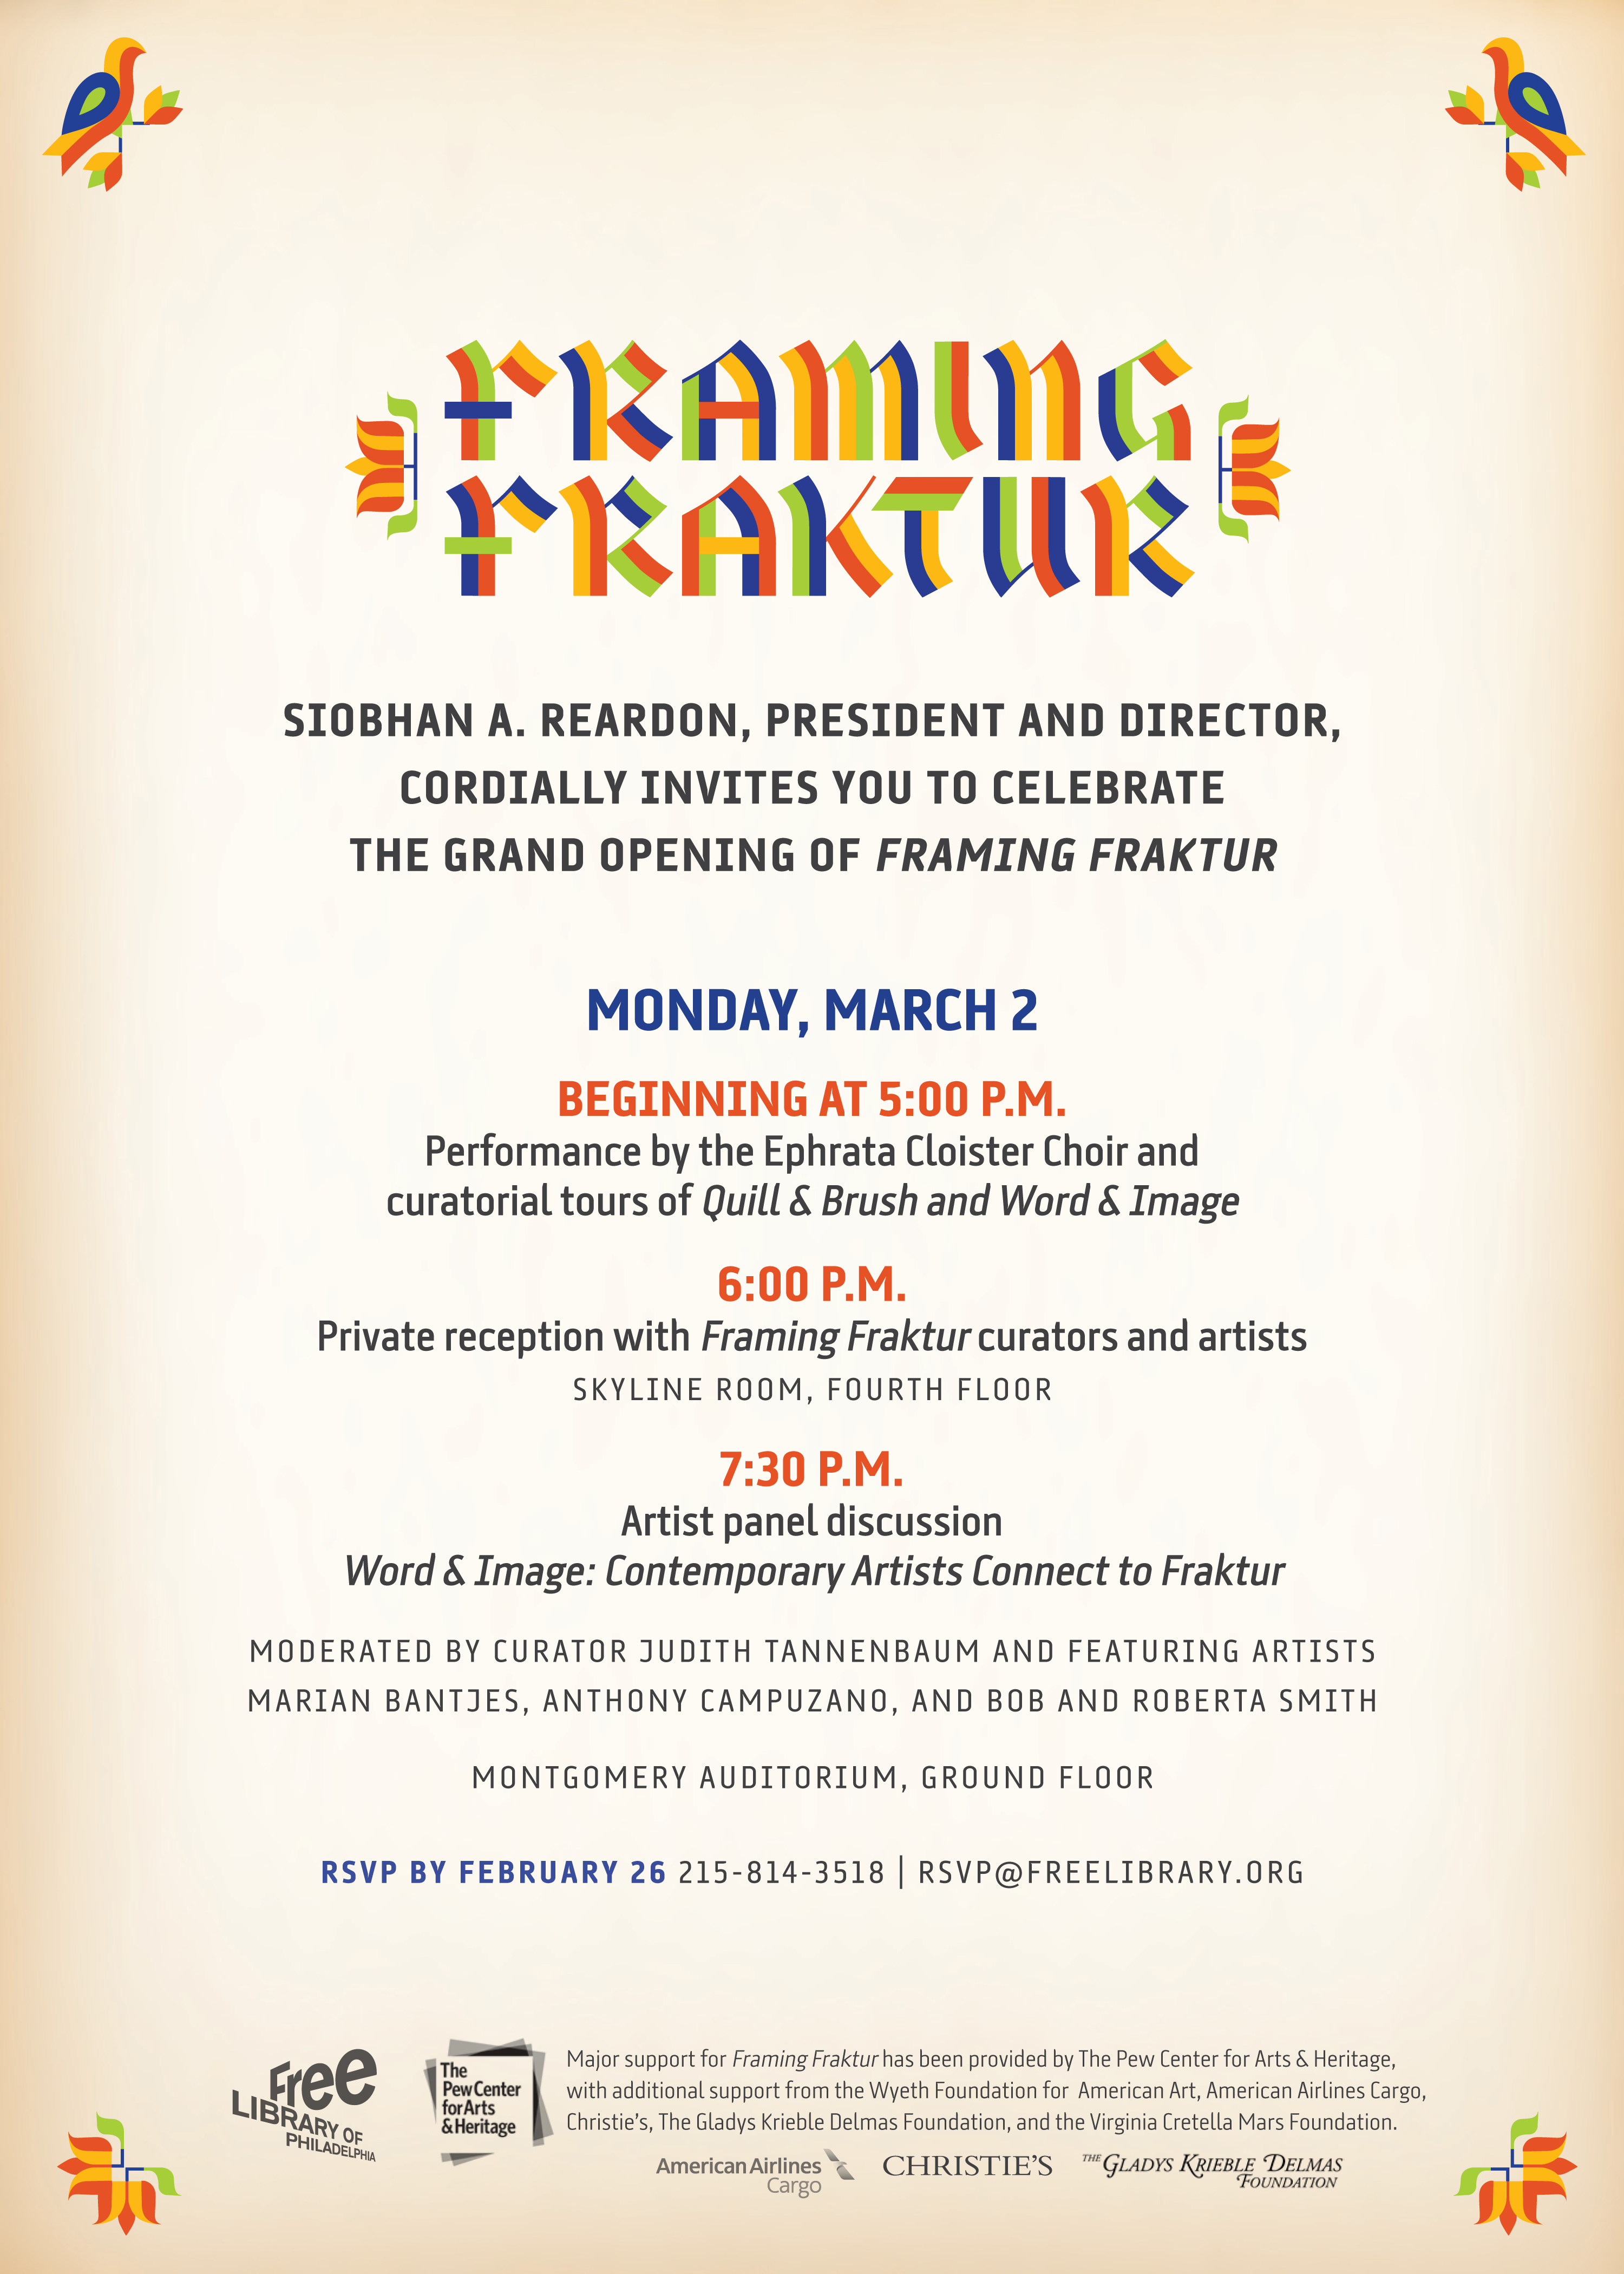 Bob & Roberta Smith included in Framing Fraktur at the Free Library ...